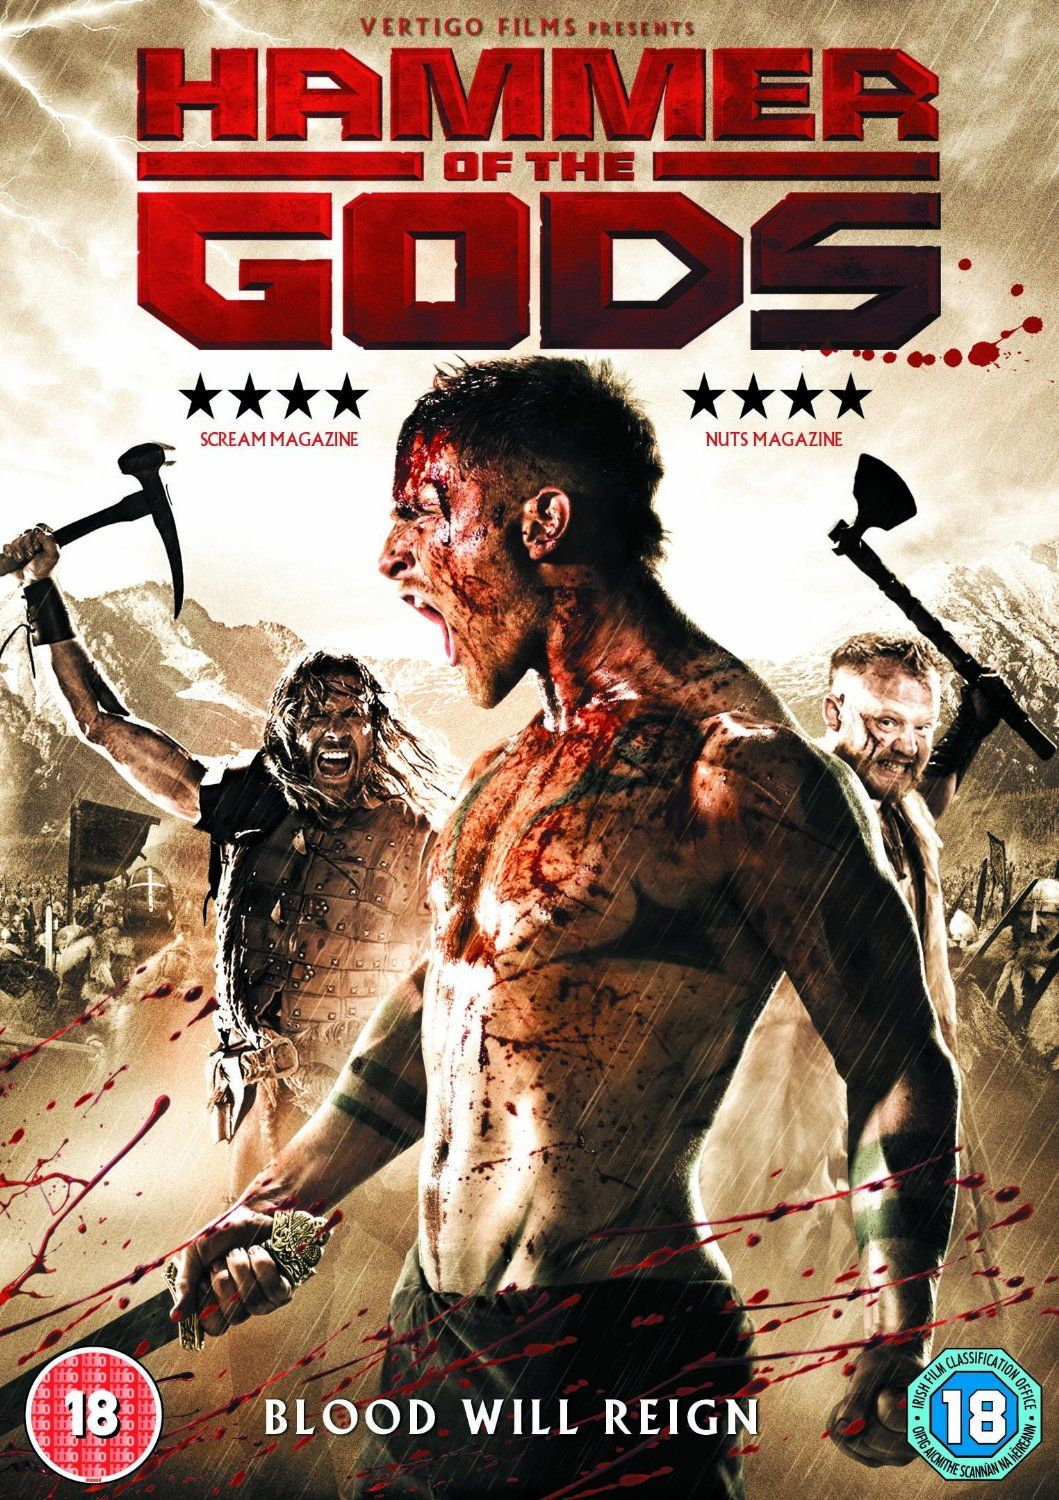 Hammer of The Gods, il martello degli dei spacca le teste (2013) DVD9 Copia 1:1 ITA ENG